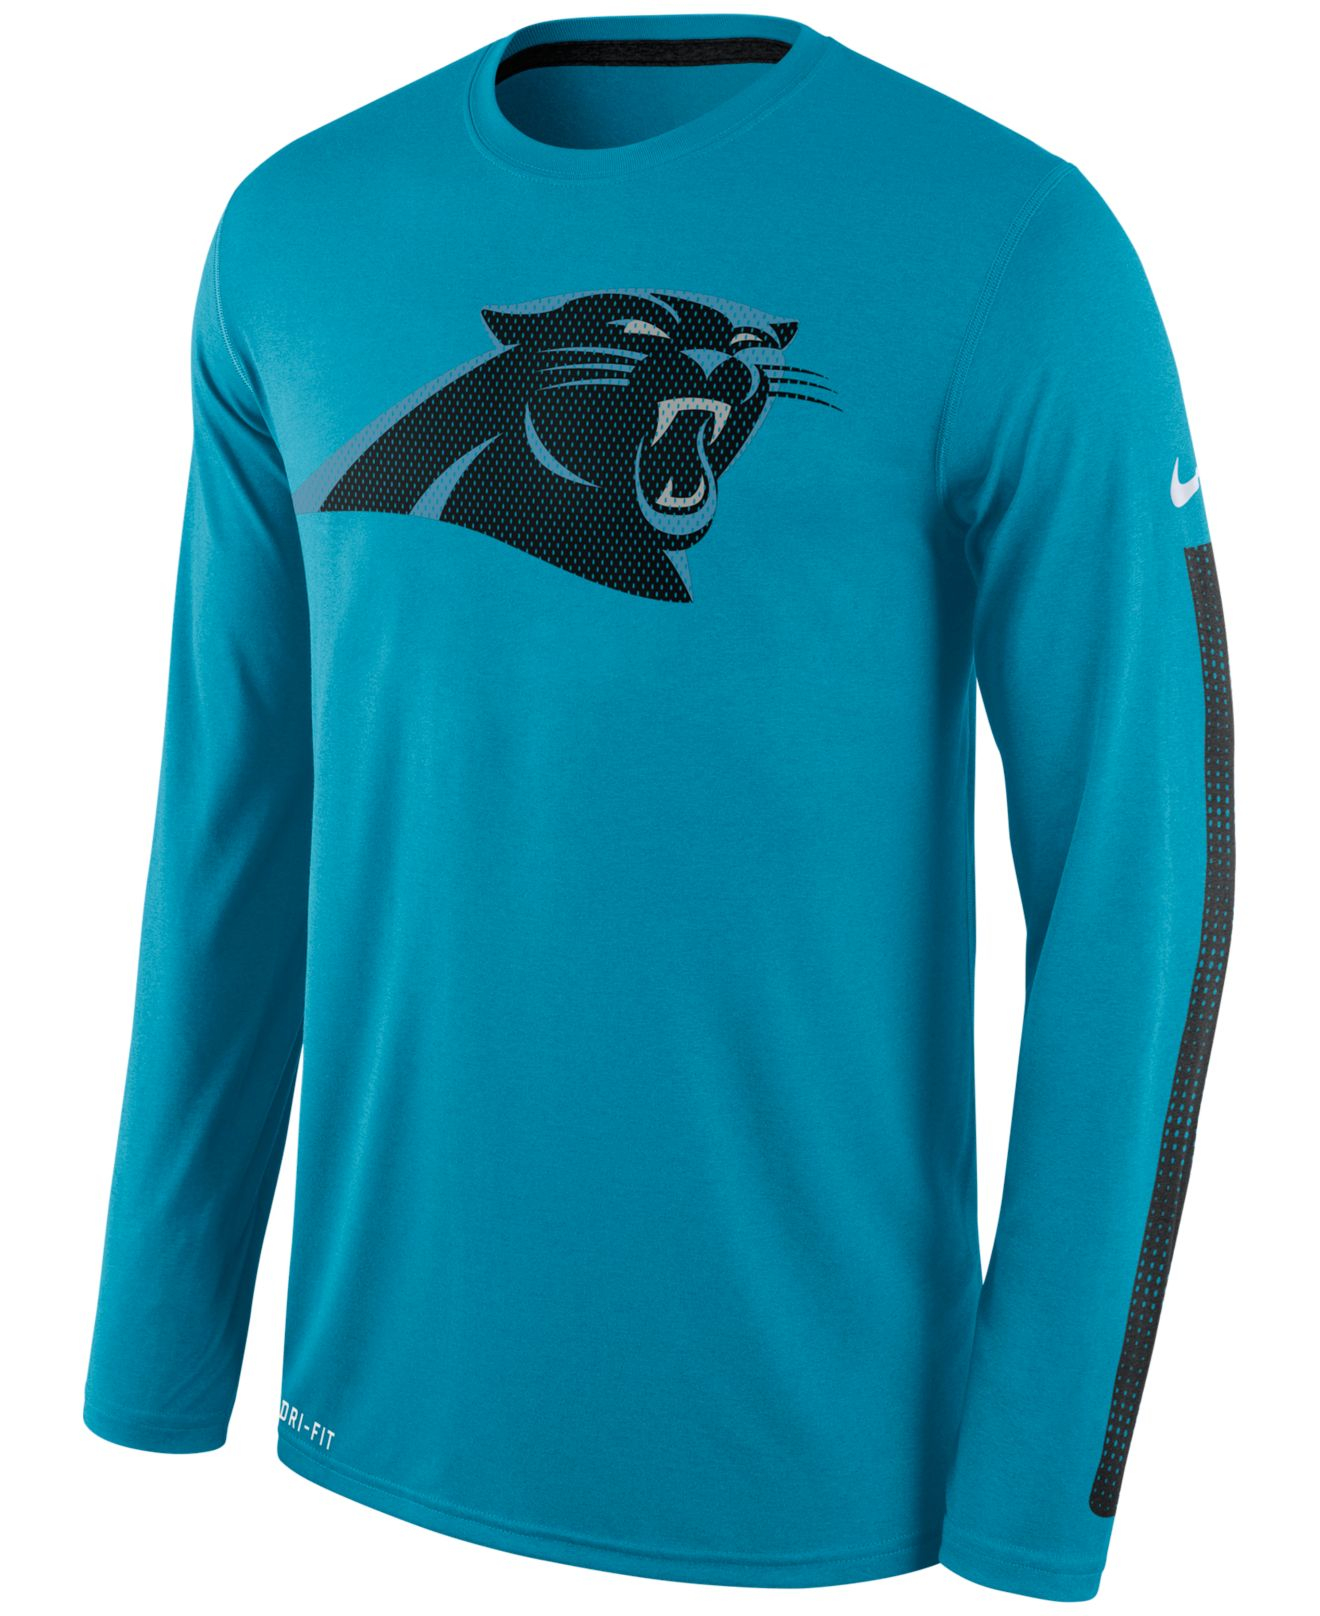 Carolina Panthers Long Sleeve T Shirts